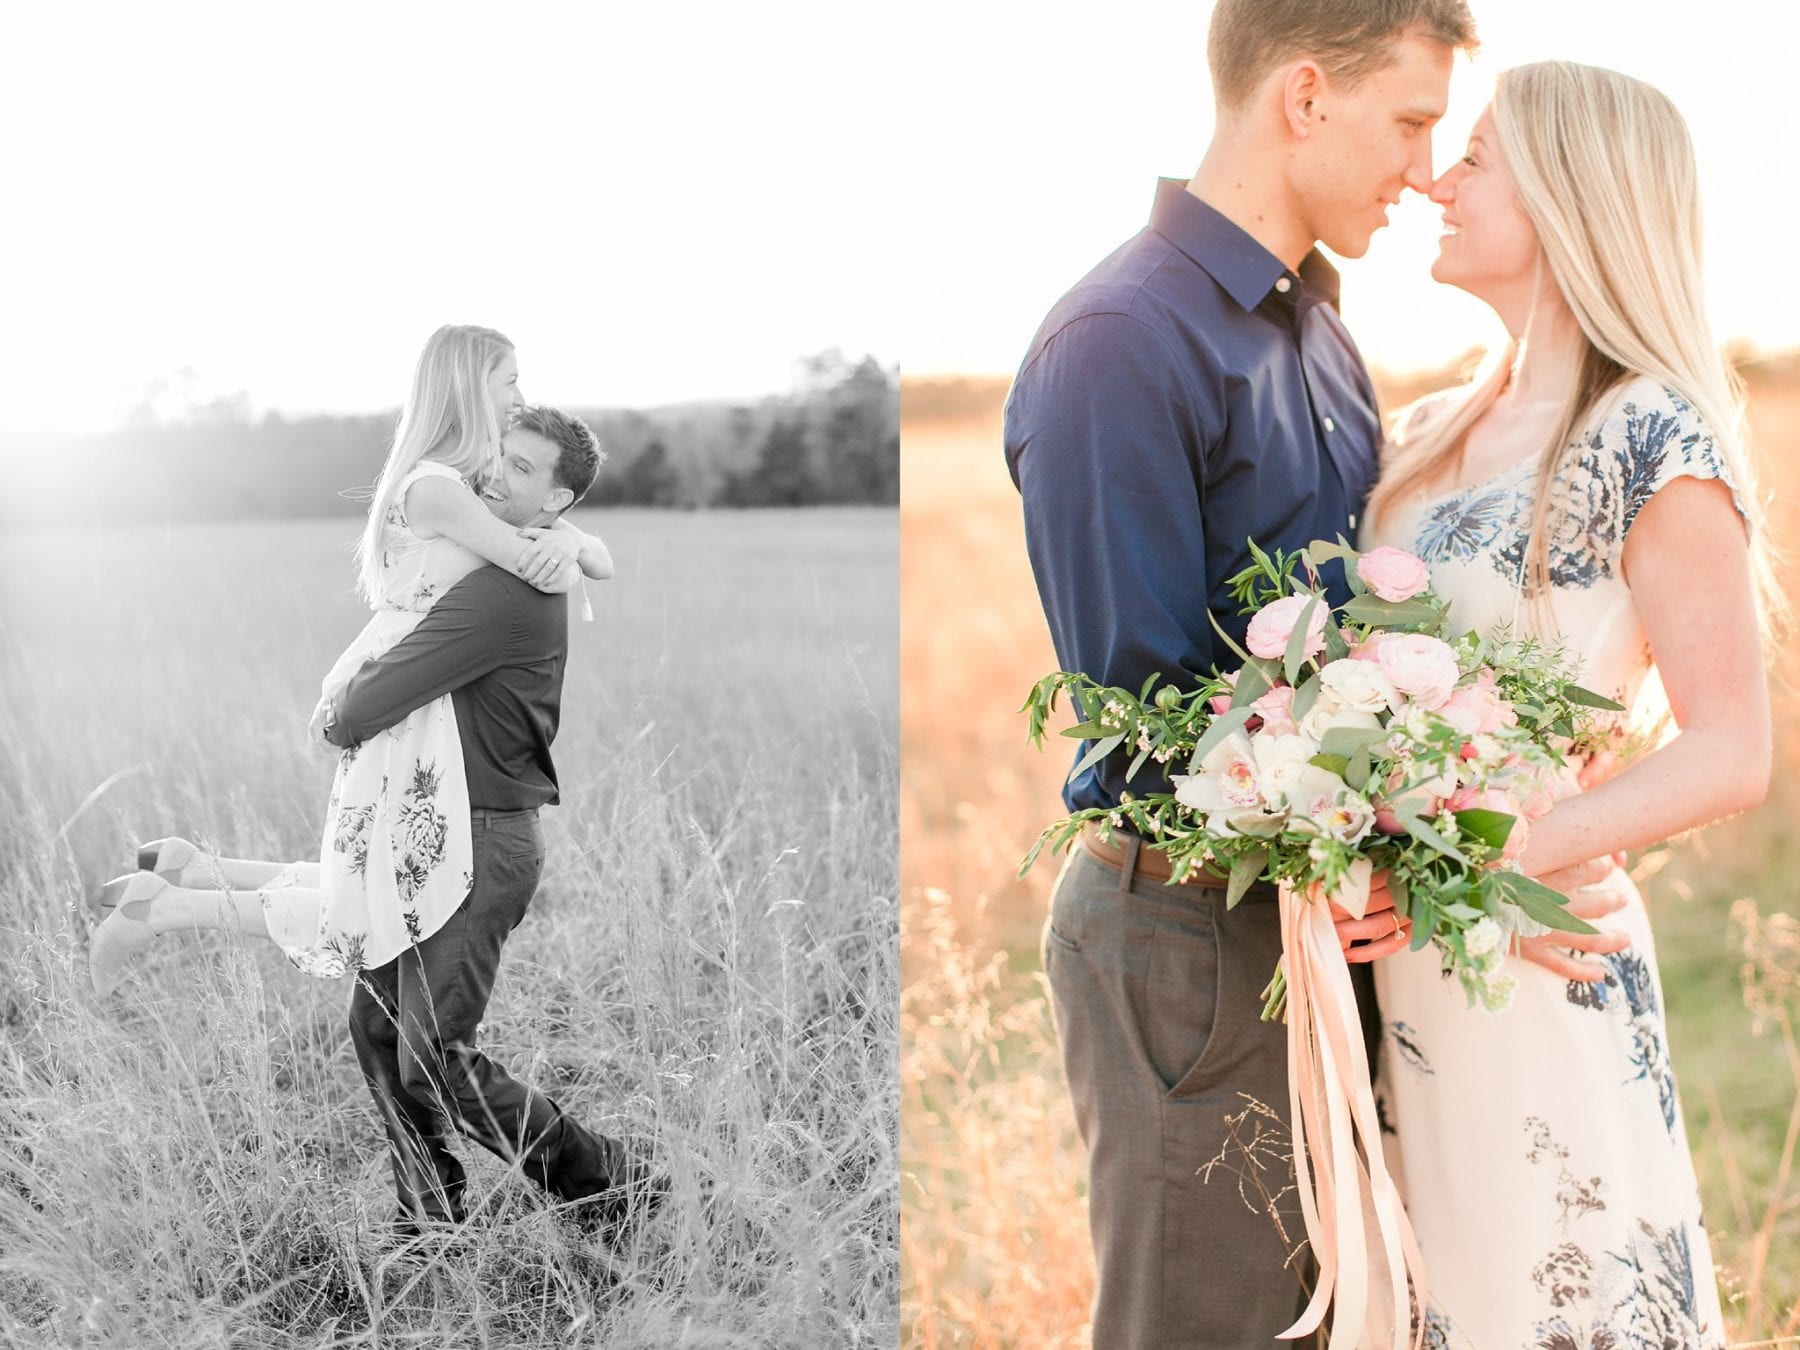 Manassas Battlefield Engagement Session Virginia Wedding Photographer Danielle & Charlie Megan Kelsey Photography-6163-2.jpg